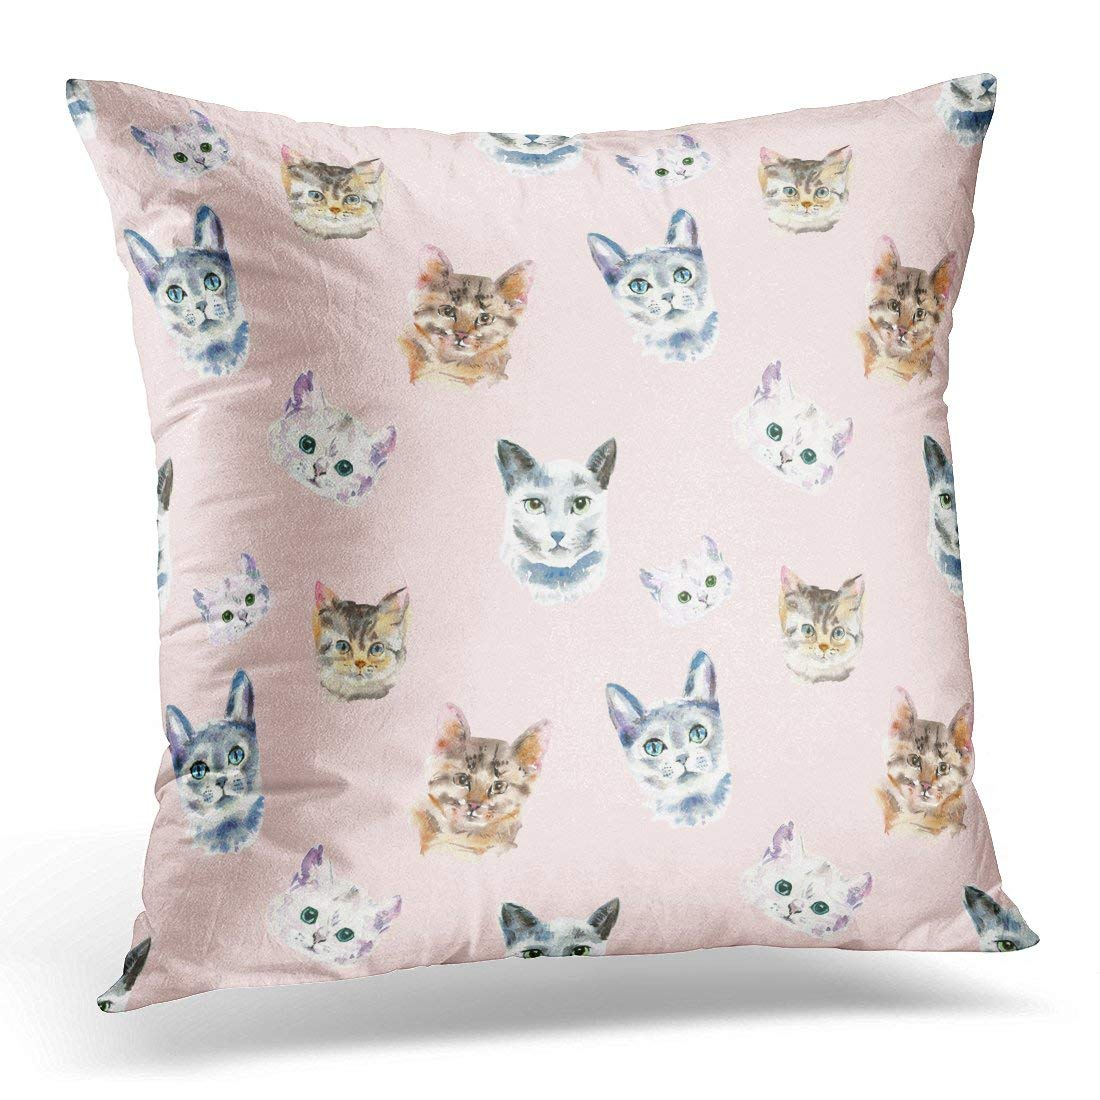 ARHOME Blue British of Watercolor Cats Animal Painting Kids Pink Pattern Kitten Head Brown Cute Pillow Case Pillow Cover 20x20 inch